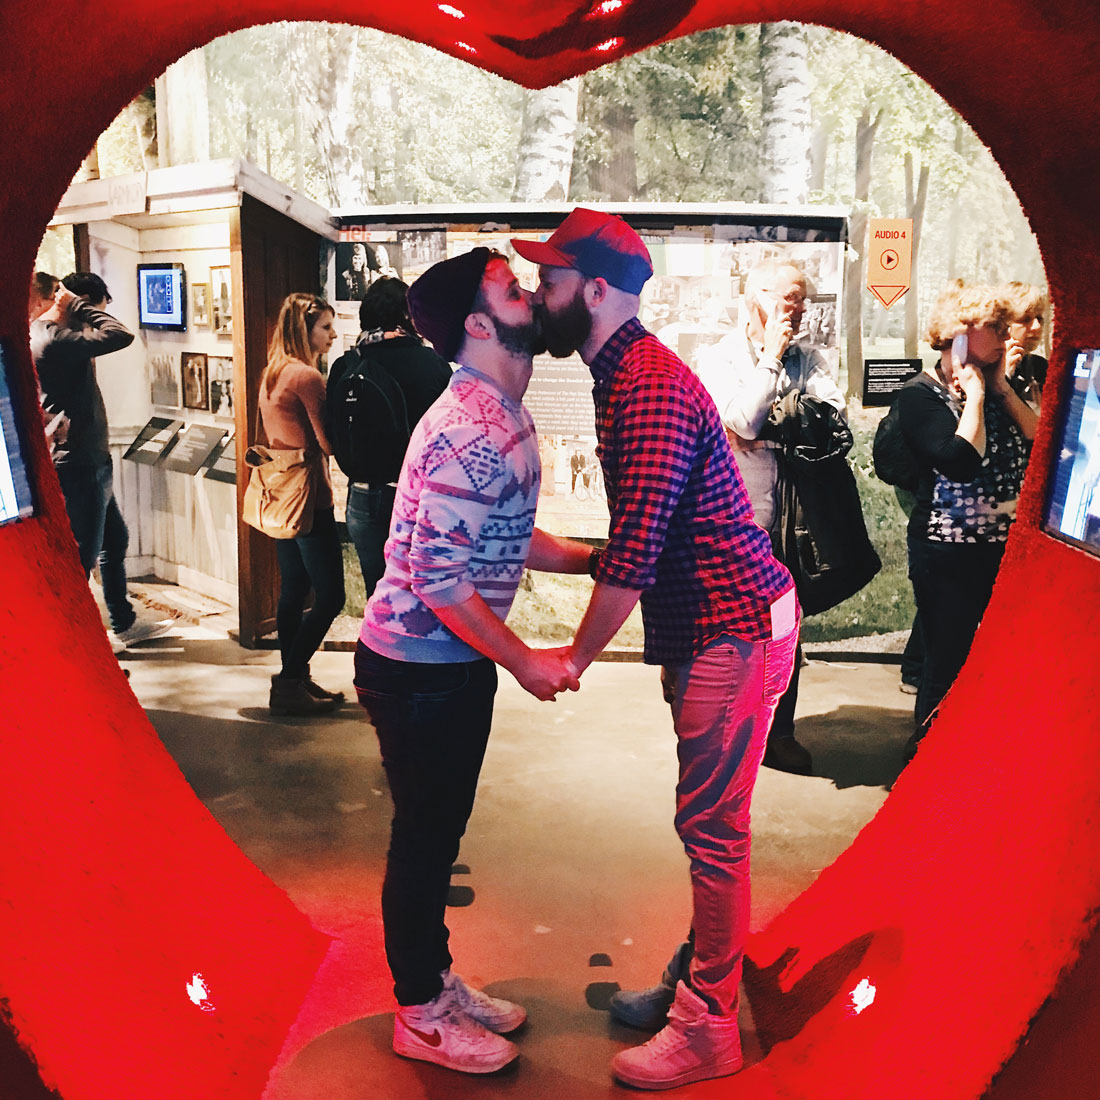 Kiss of Love at ABBA Museum   Gay Travel Tips for EuroPride 2018 Stockholm © Coupleofmen.com